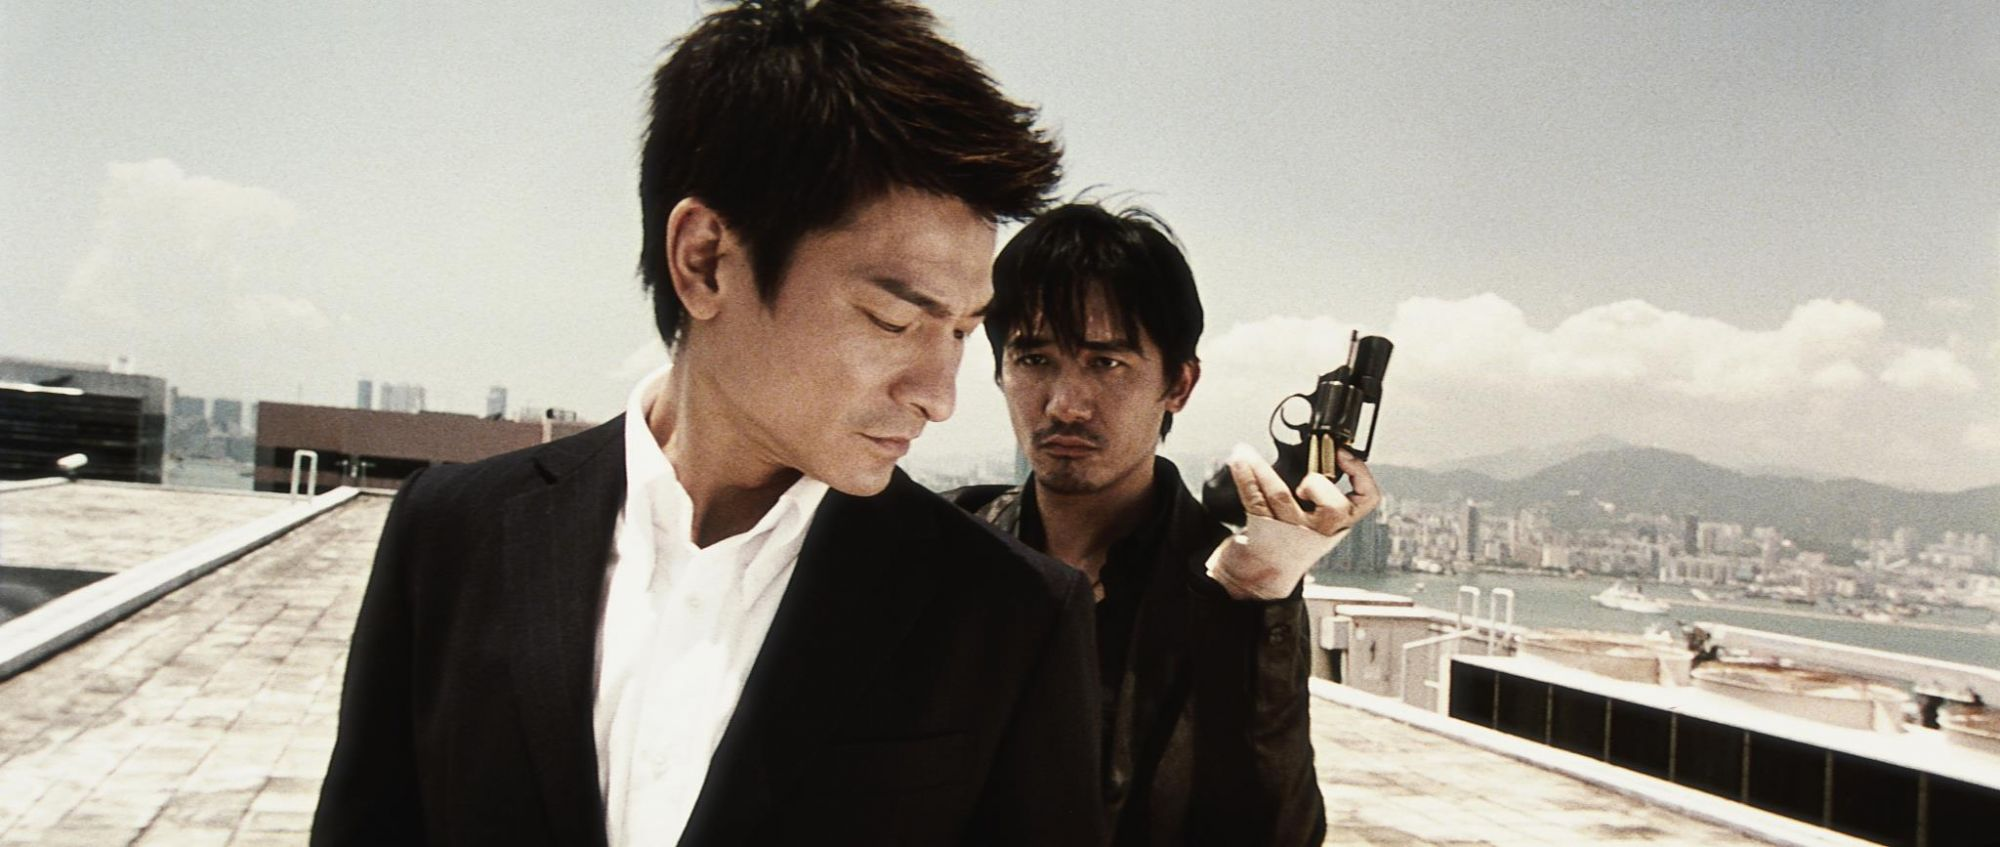 14 Great Hong Kong Movies to Add to Your Netflix Watch List